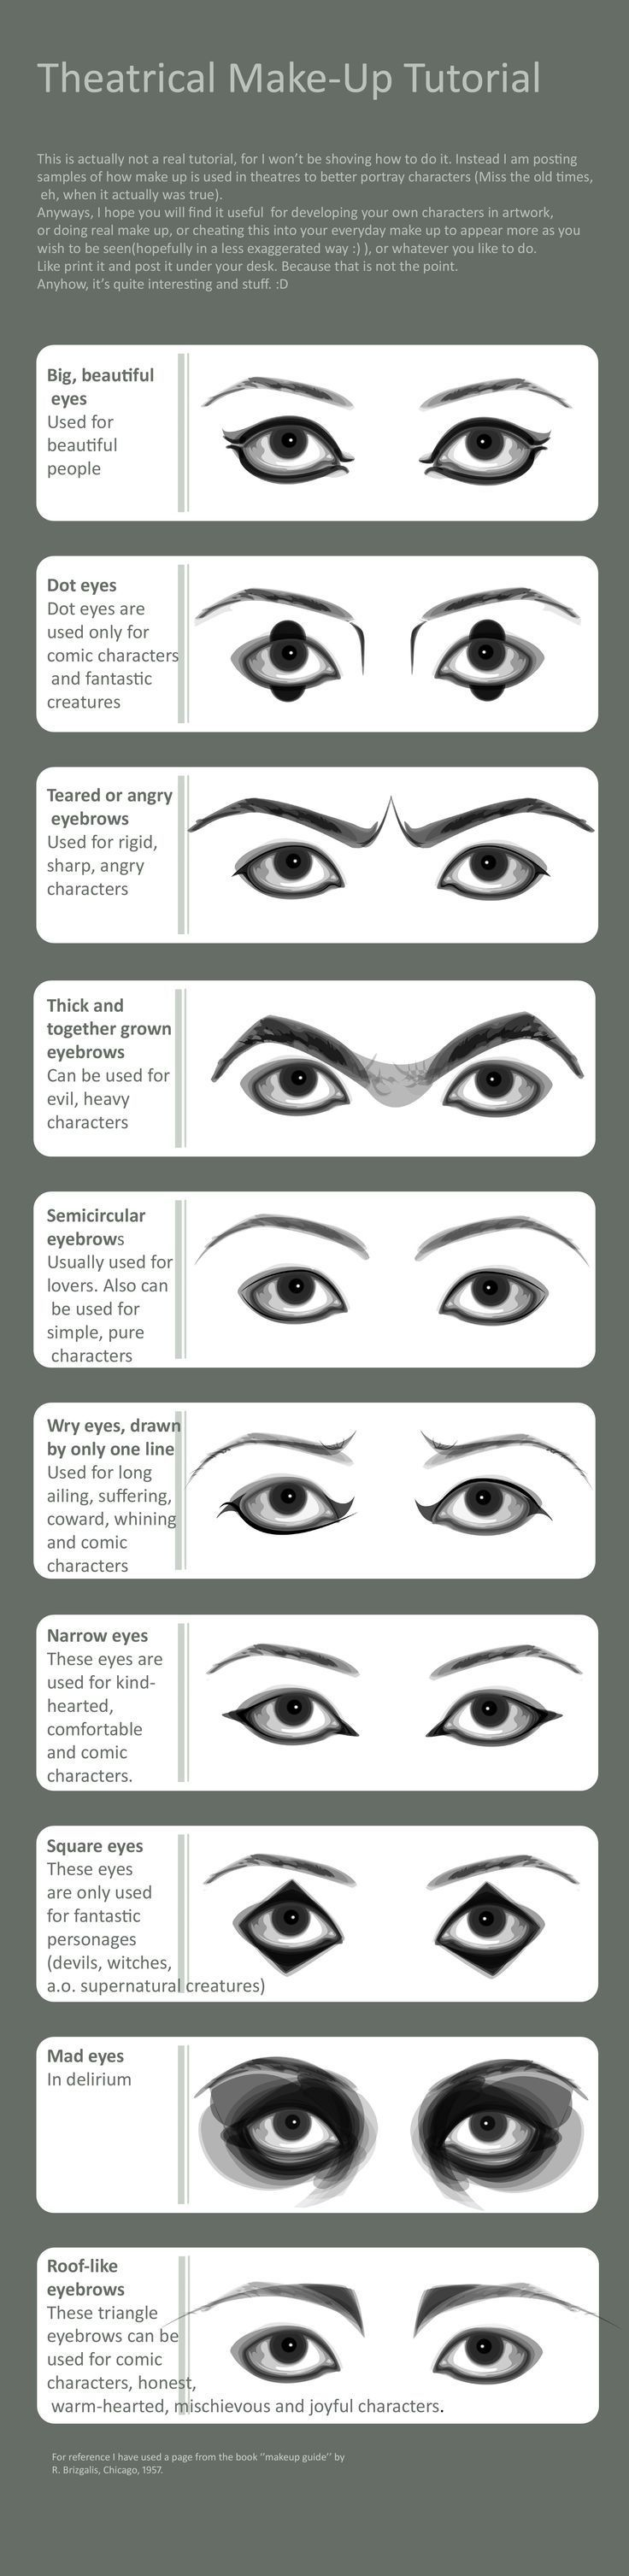 [pin_description]. click to see guides on makeup